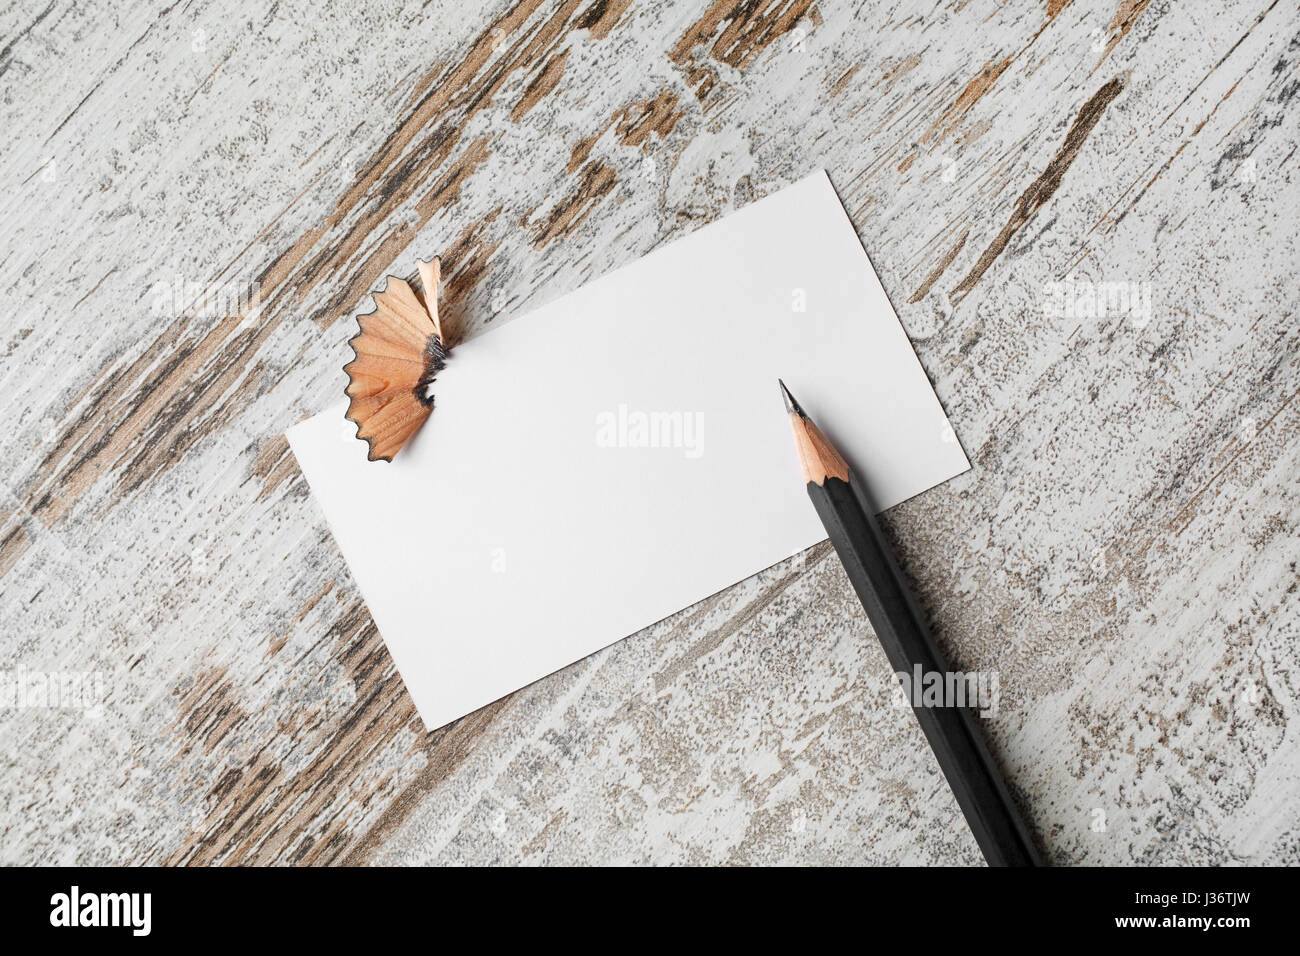 Bank business card and pencil on vintage wooden table background ...